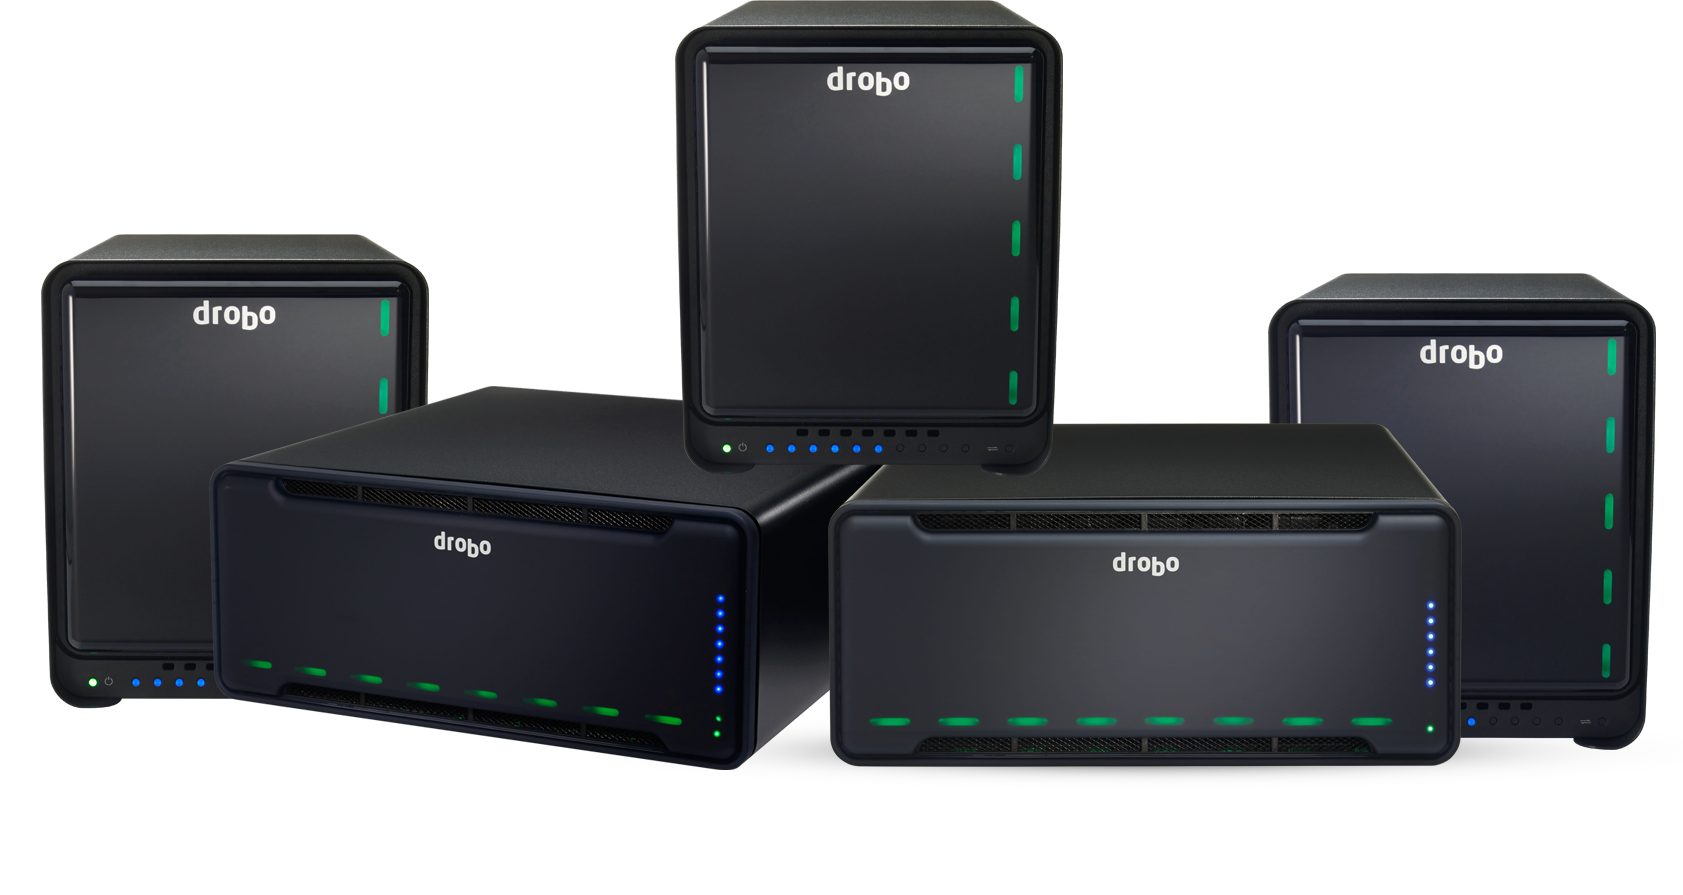 Drobo-Products.png